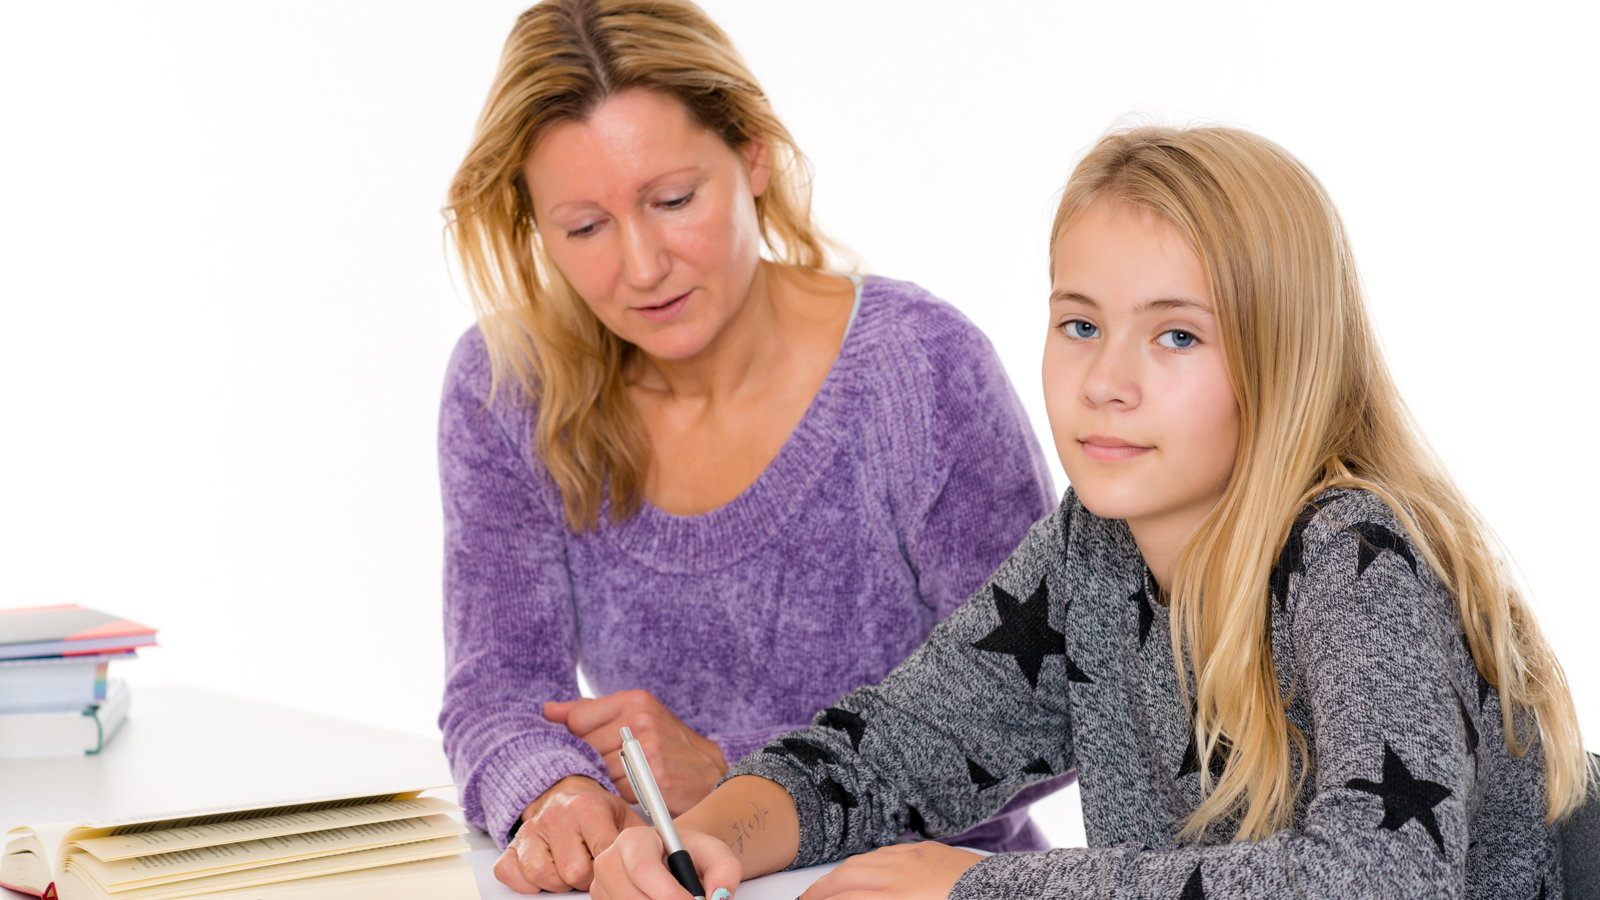 mom and teen daughter studying